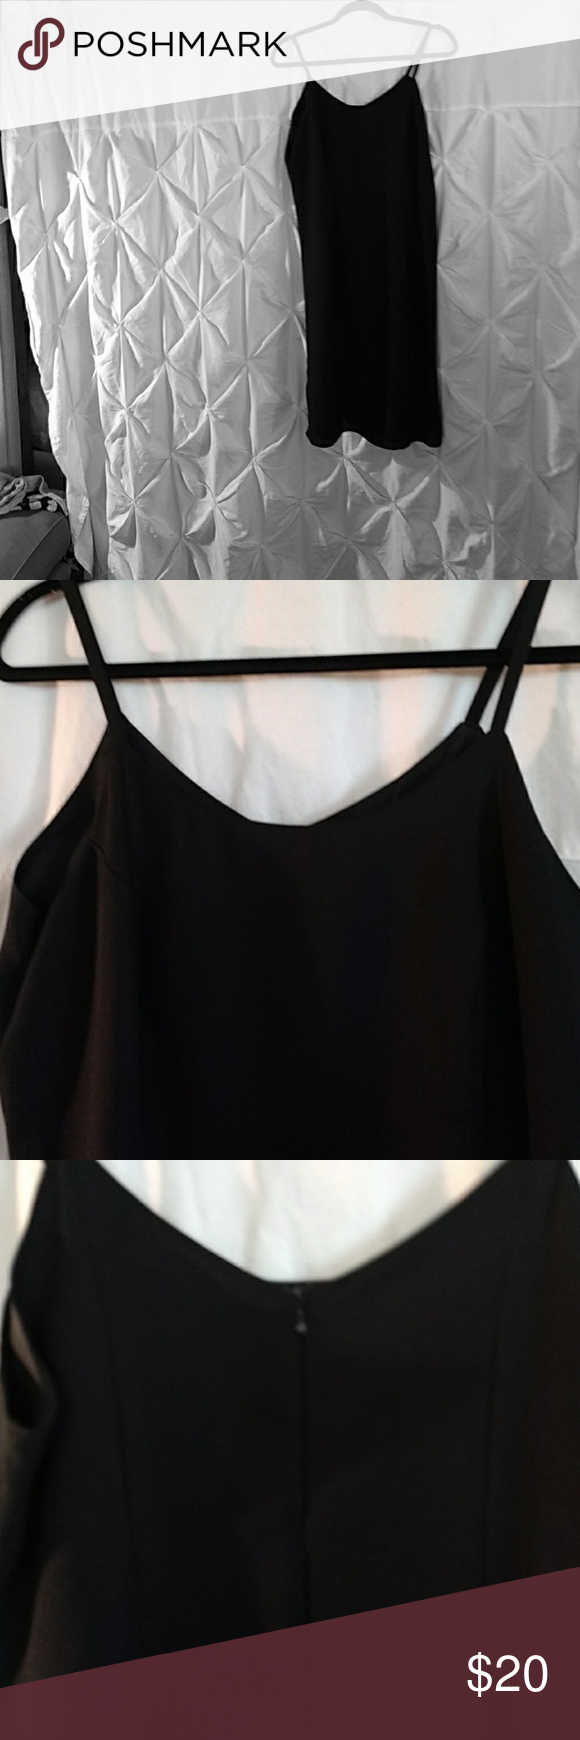 Mlle gabrielle a classic black dress made out of per cent